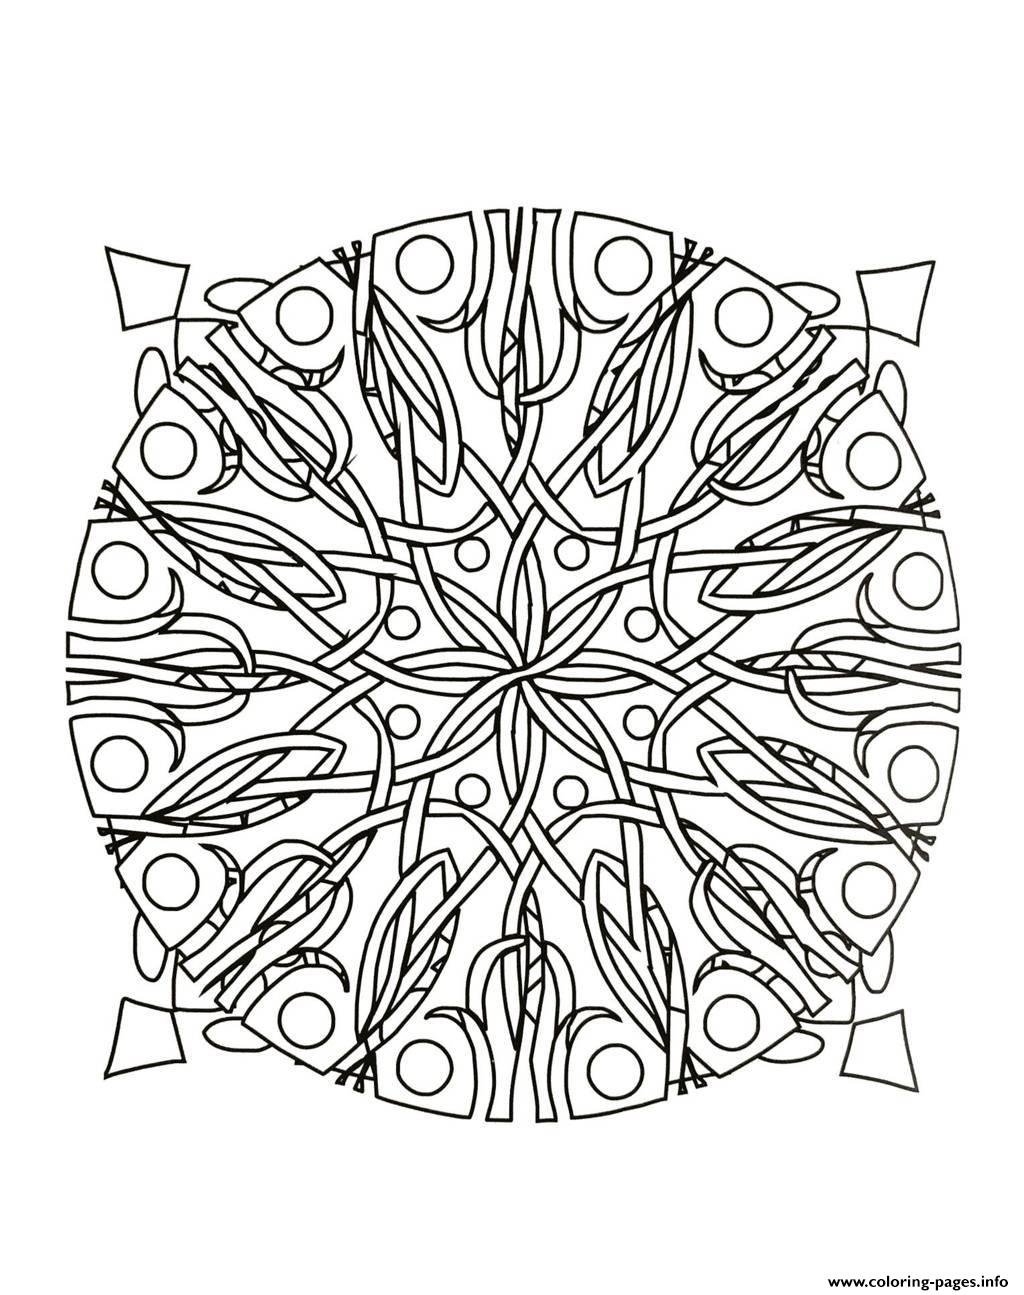 Mandalas To Download For Free 1  coloring pages